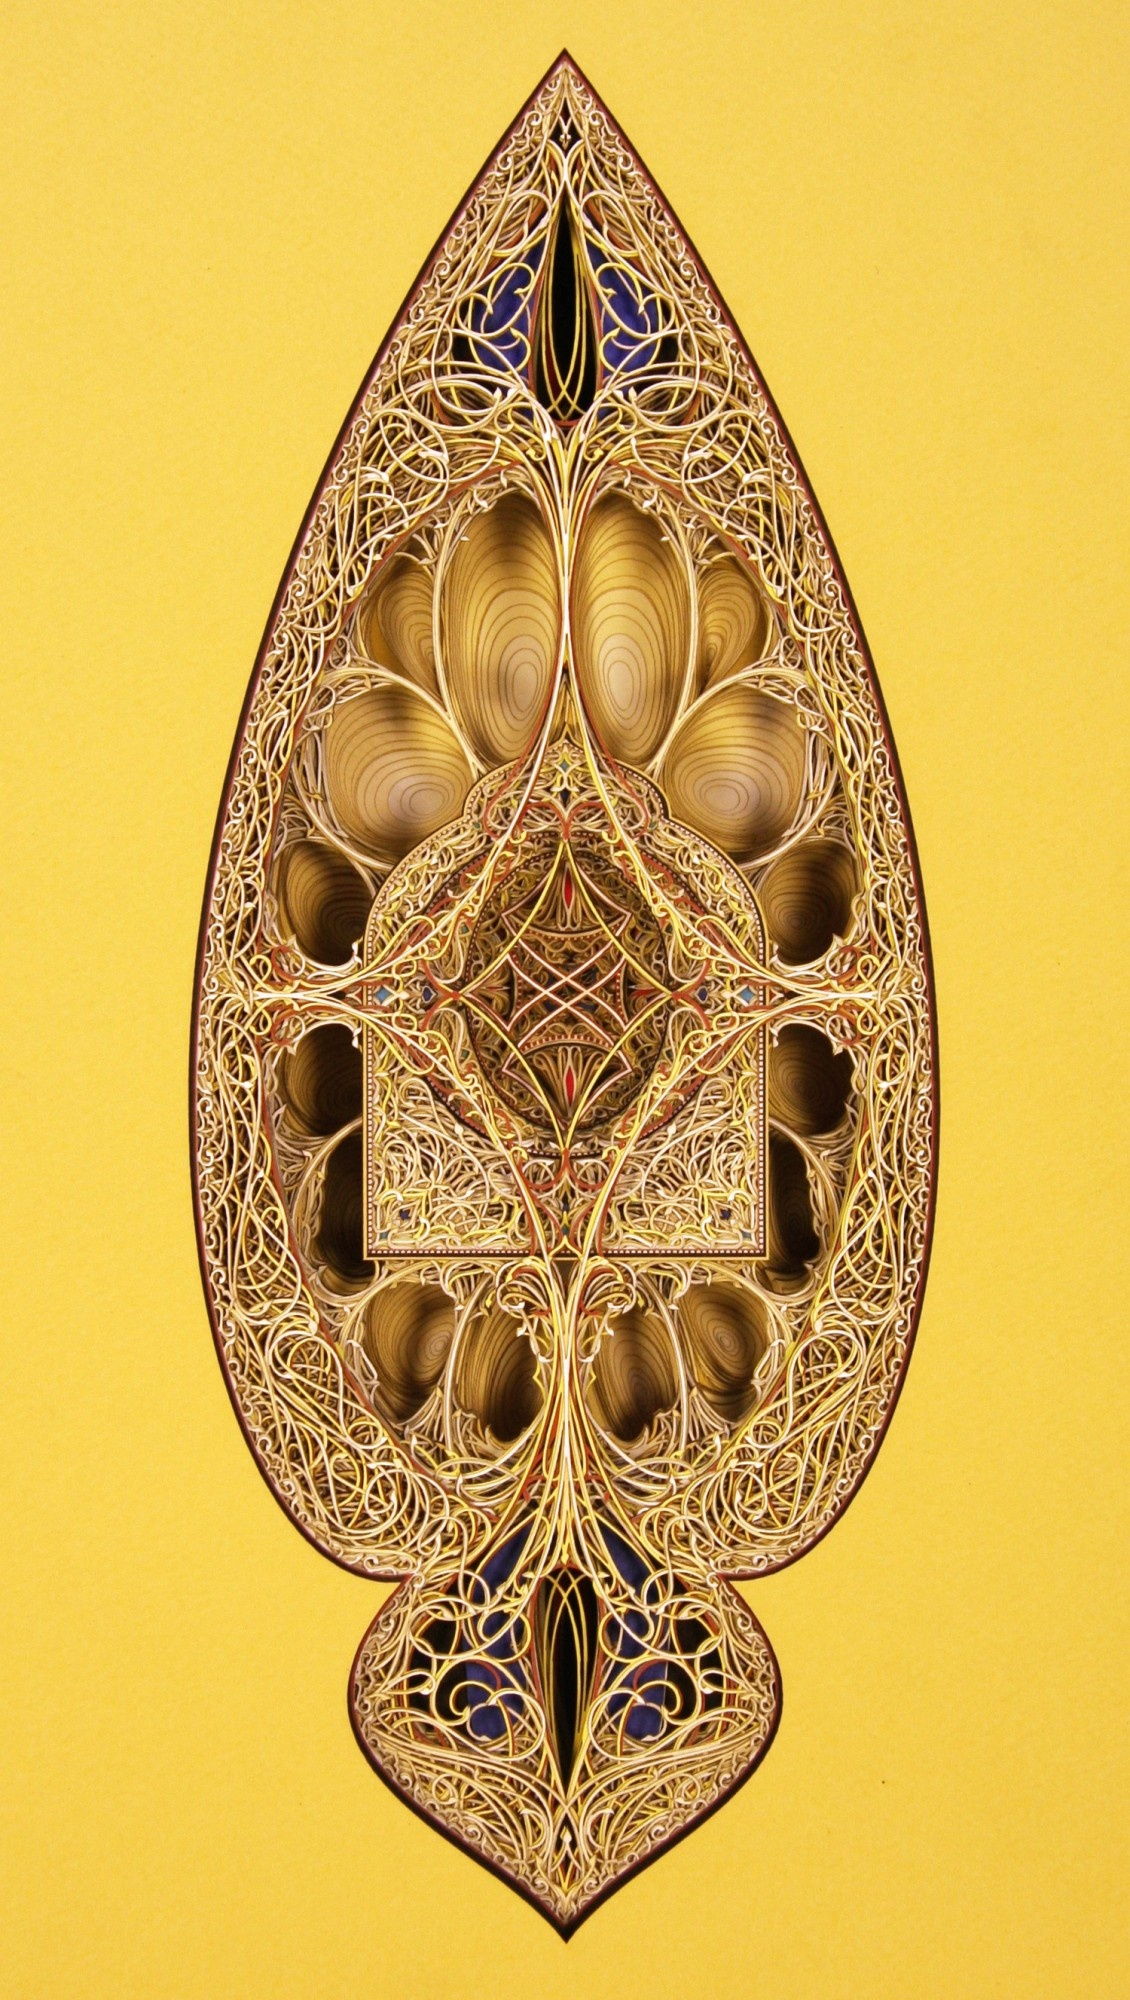 intricate-stained-glass-windows-colorful-laser-cut-paper-eric-standley-agawam-strictlypaper